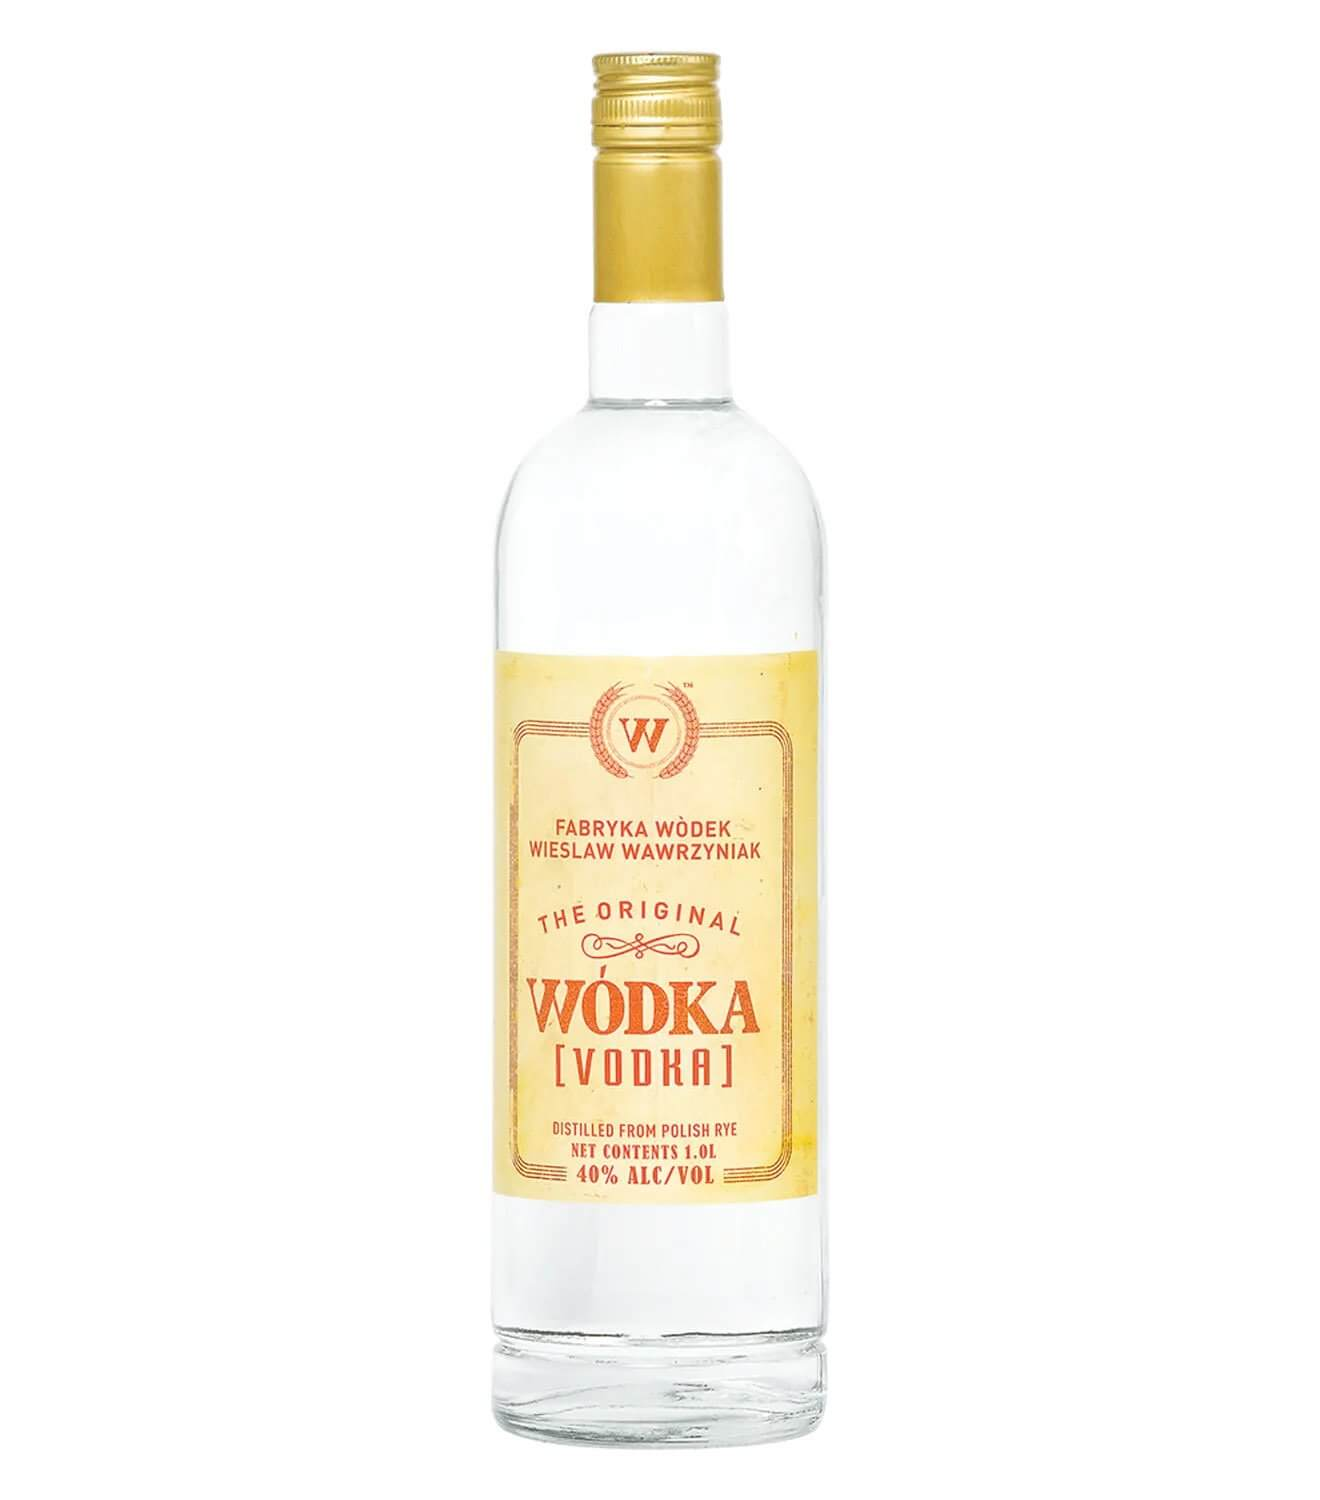 Wódka Vodka